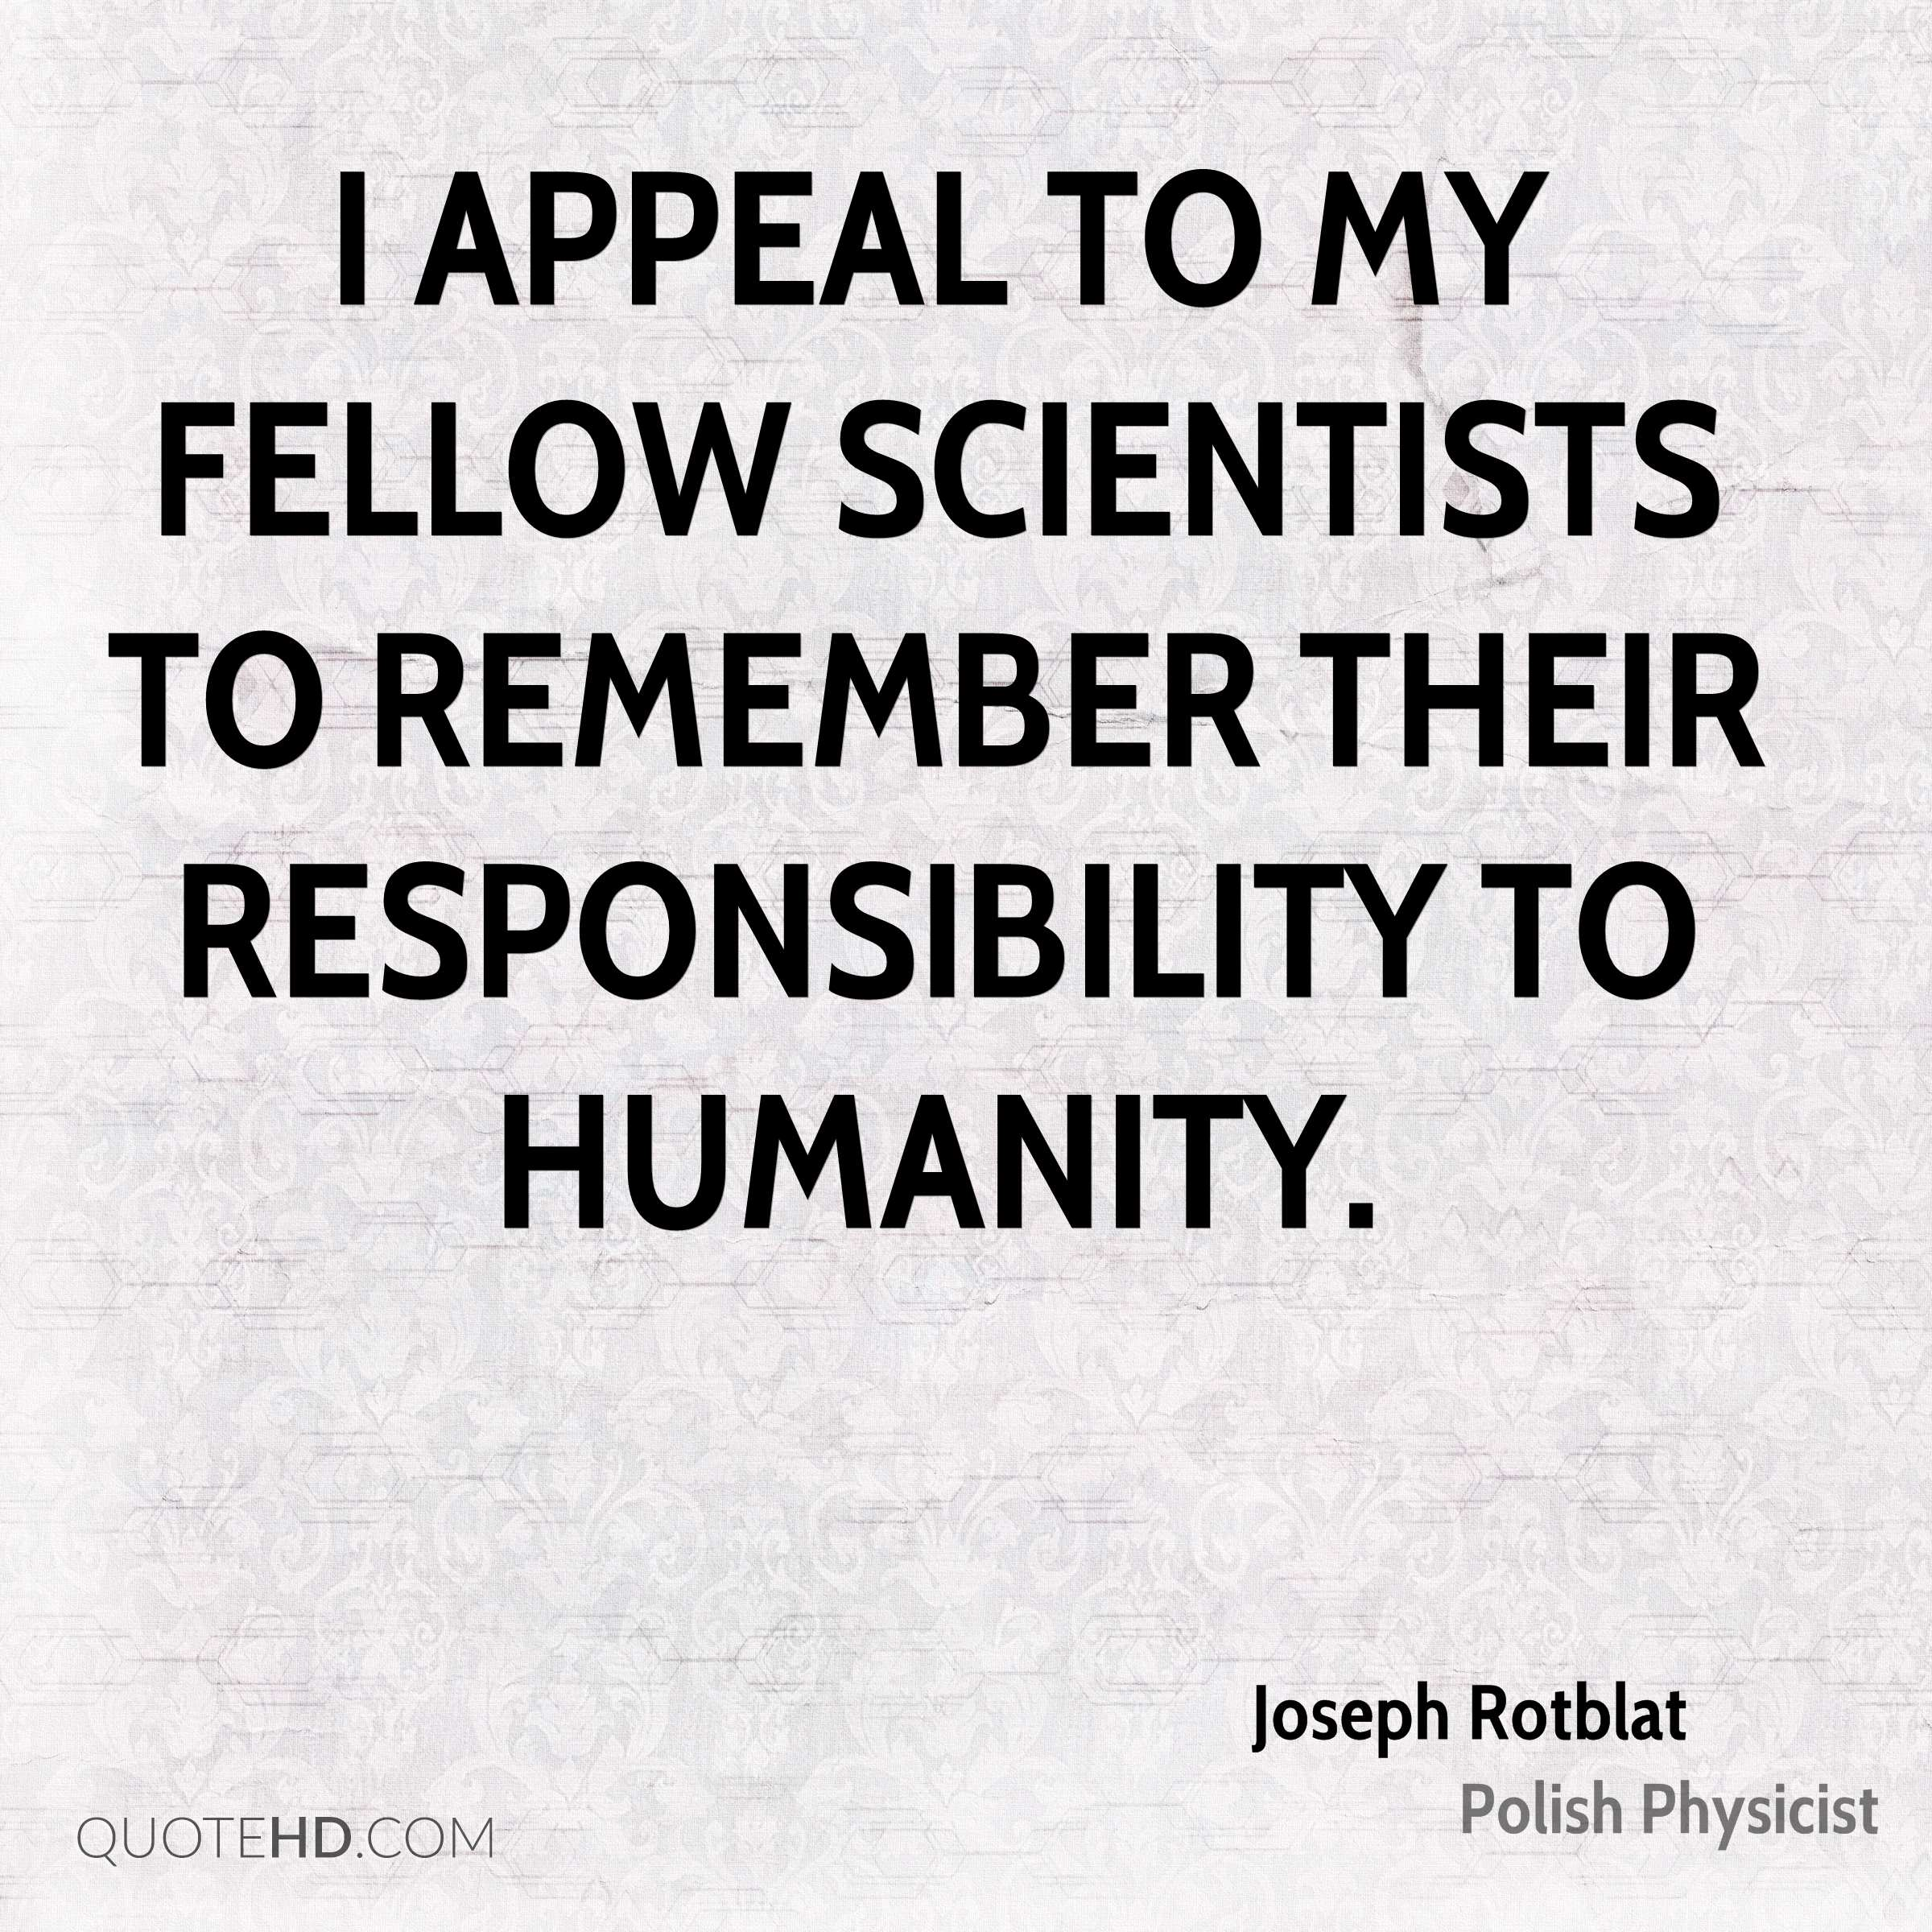 I appeal to my fellow scientists to remember their responsibility to humanity.